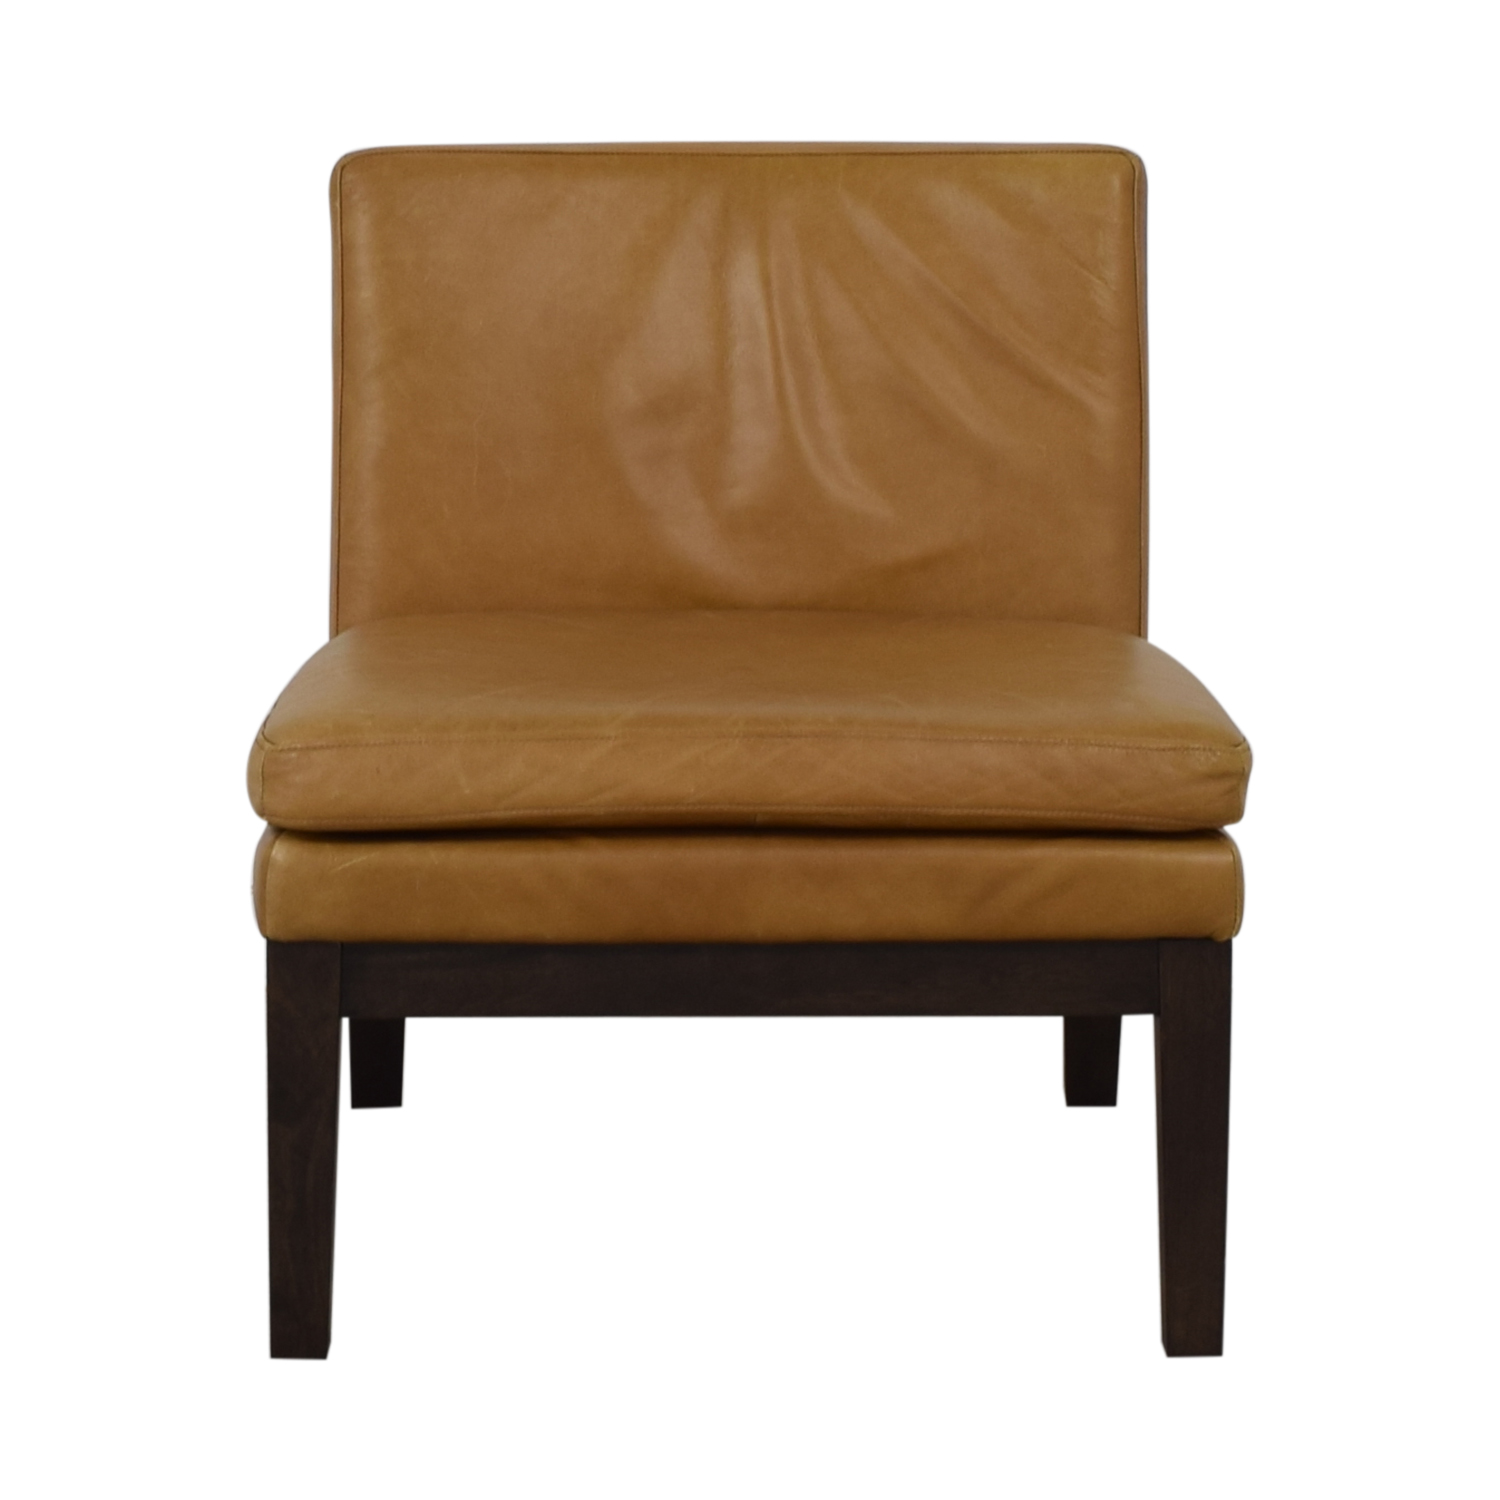 West Elm West Elm Orange Tan Leather Chair